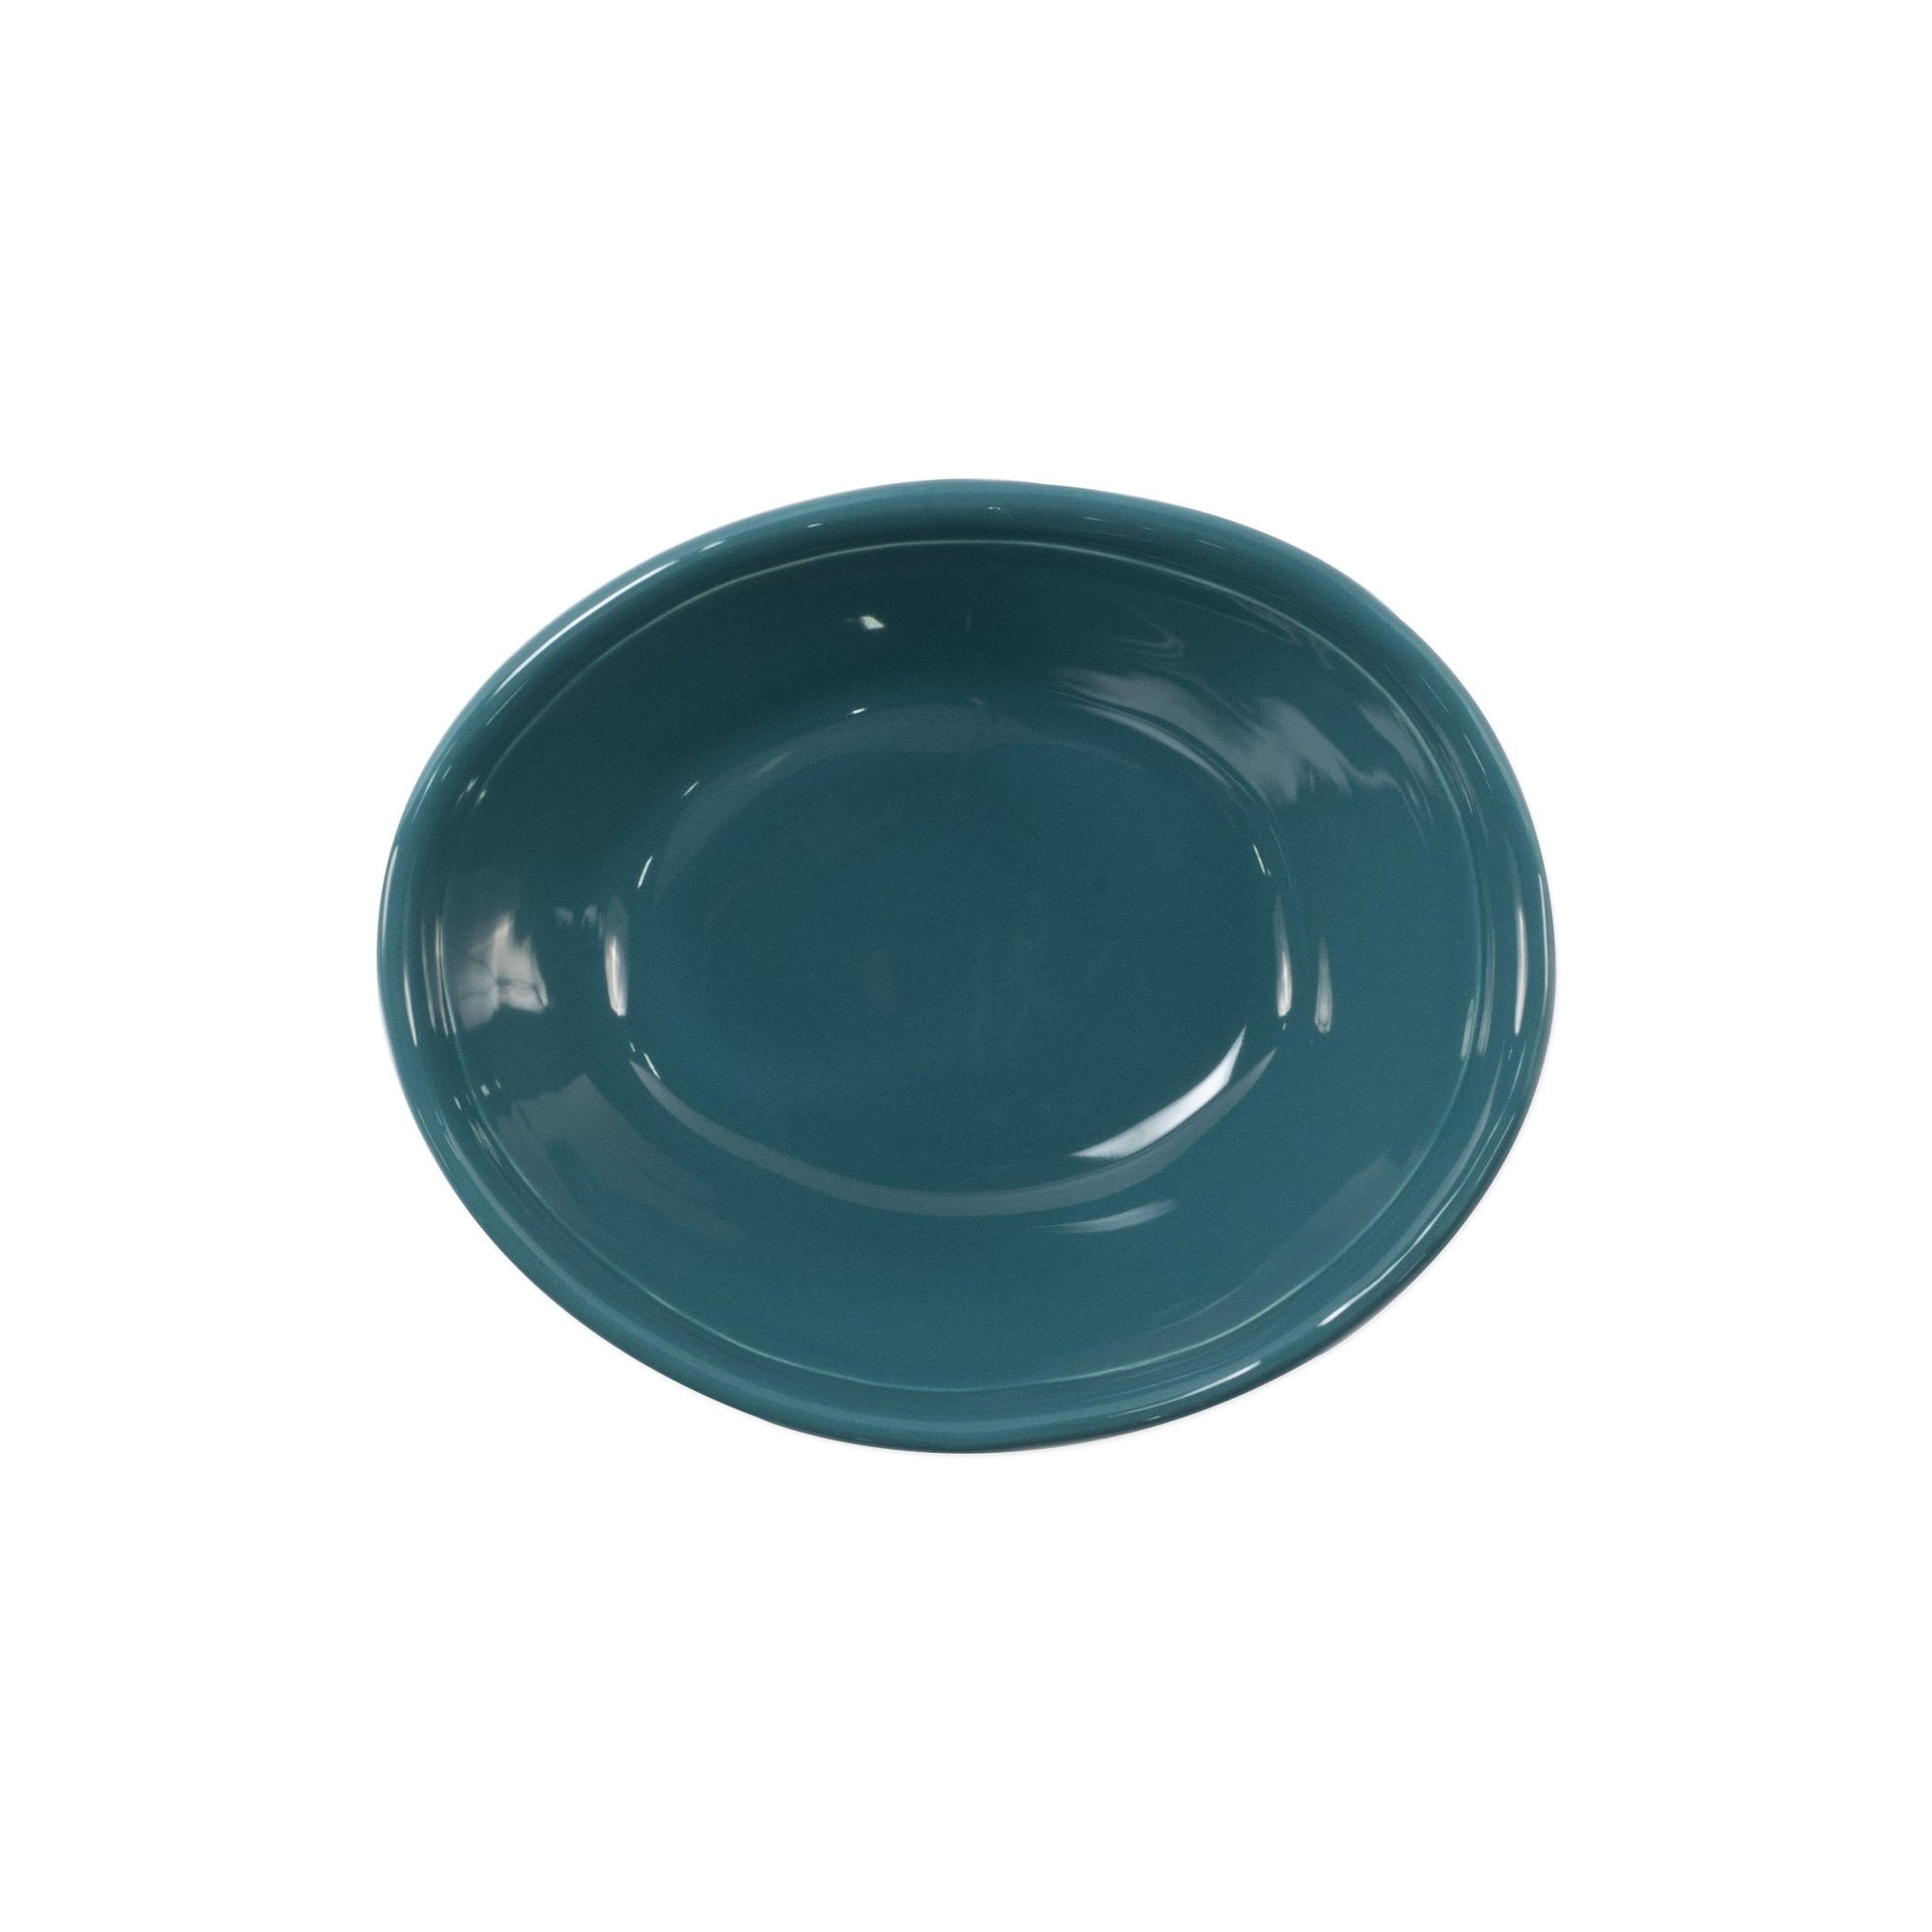 Fresh Teal Small Oval Bowl